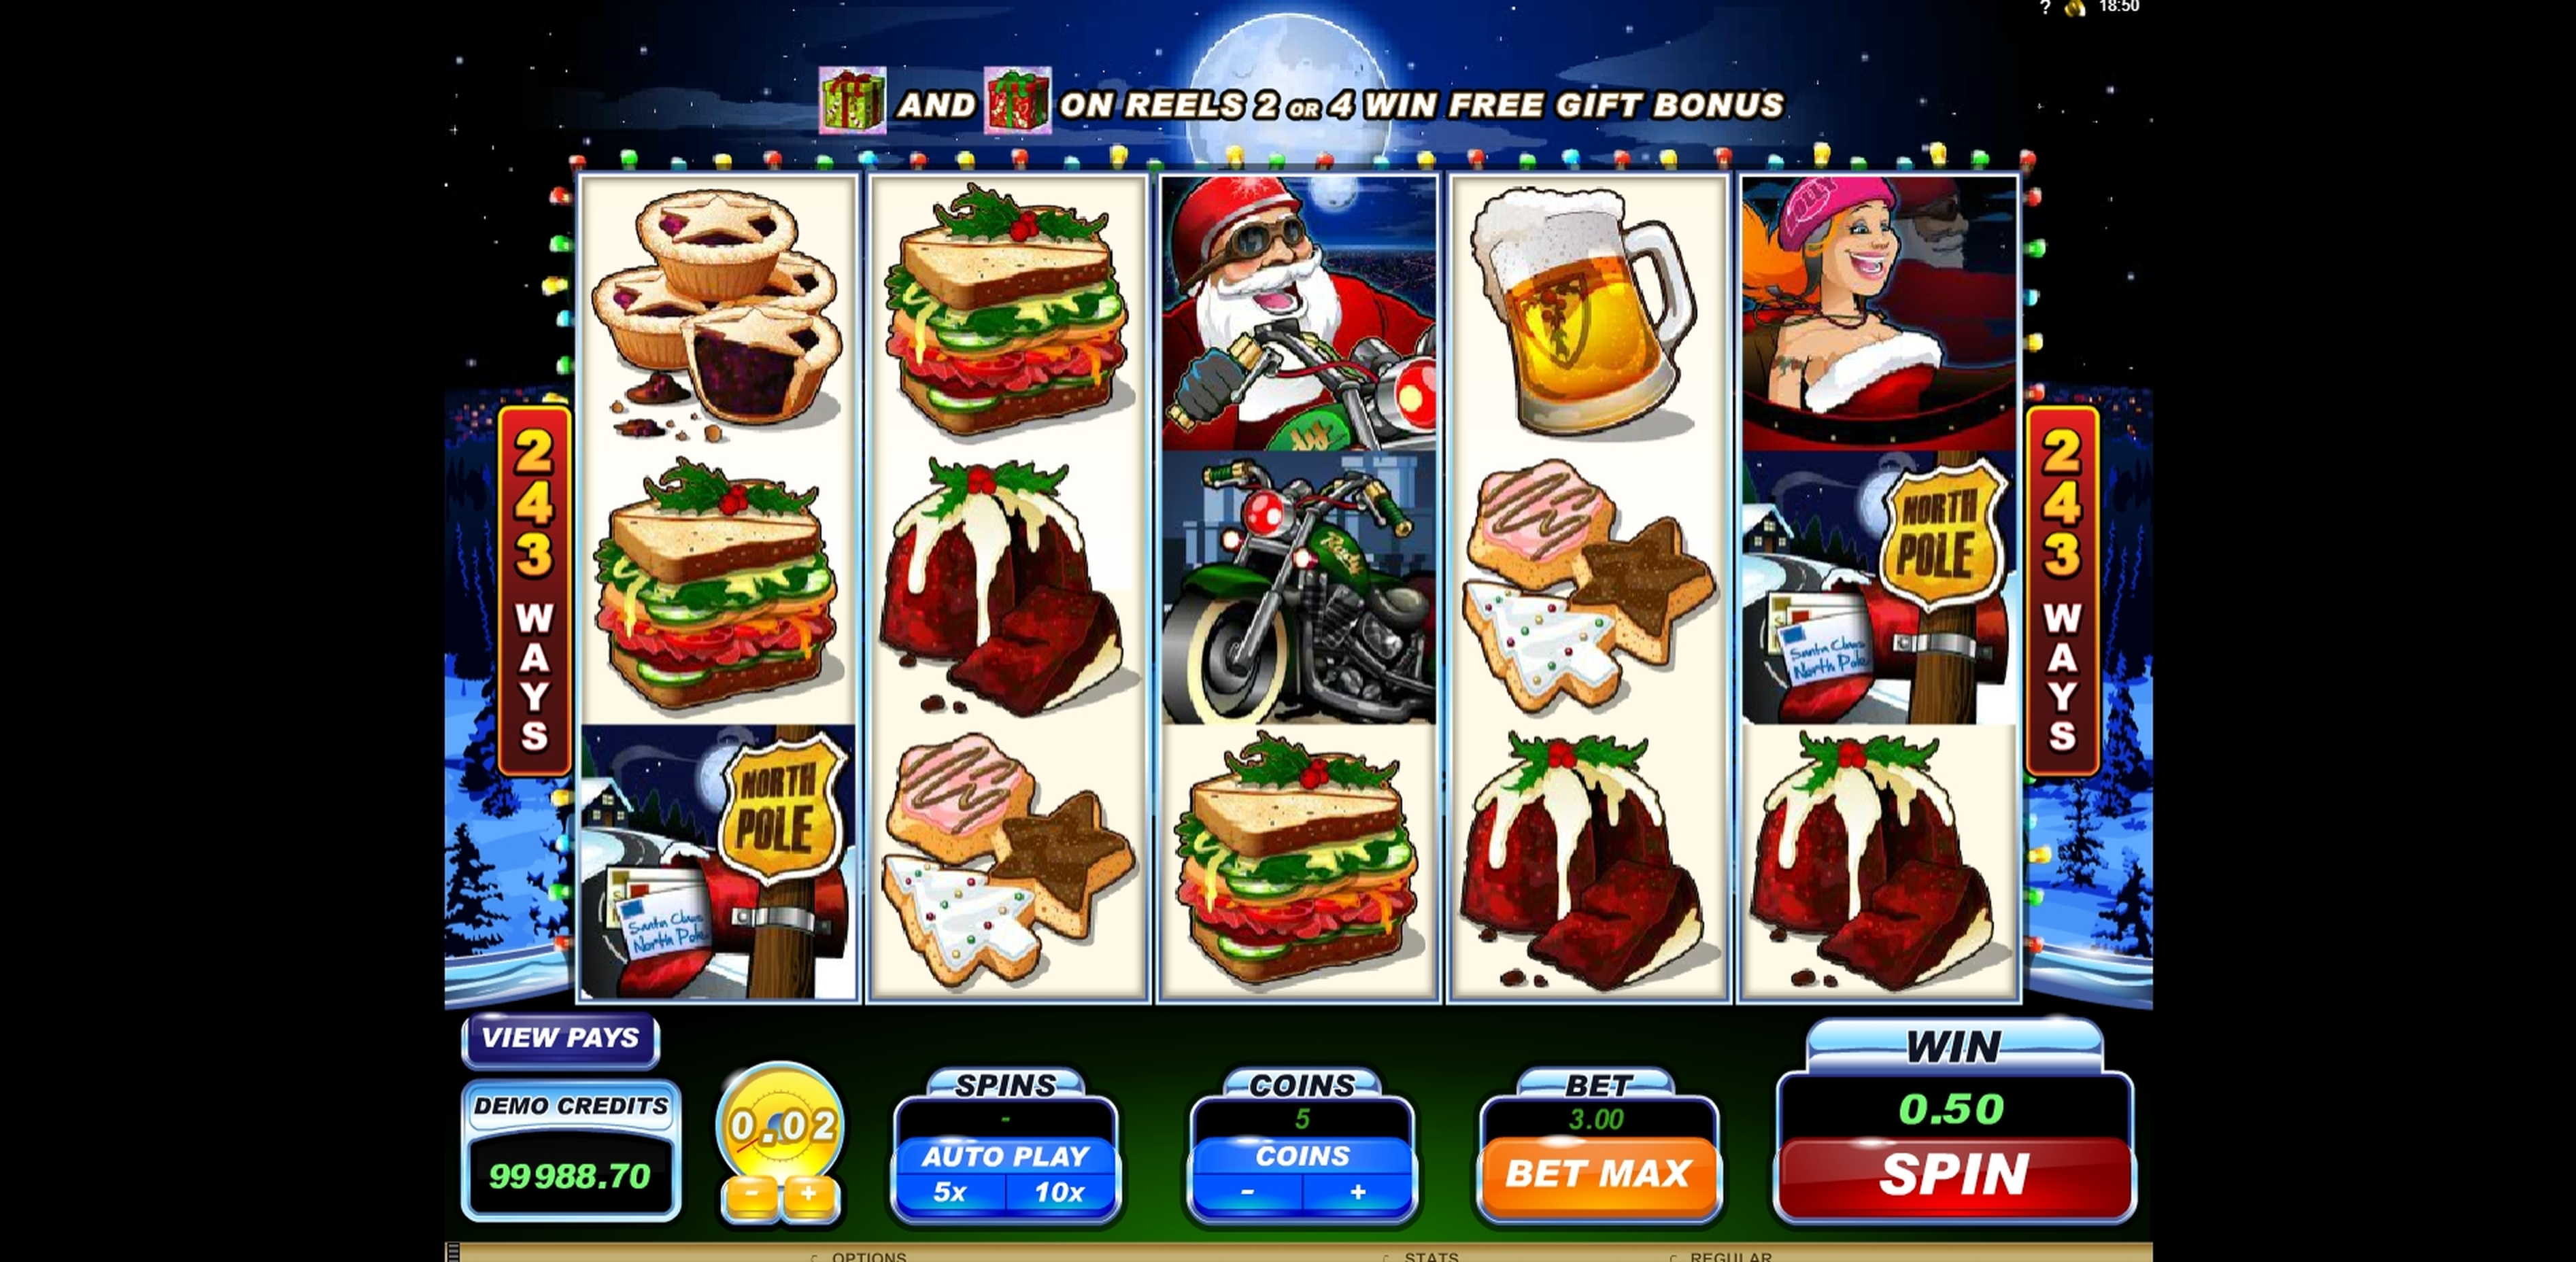 Win Money in Santa's Wild Ride Free Slot Game by Microgaming